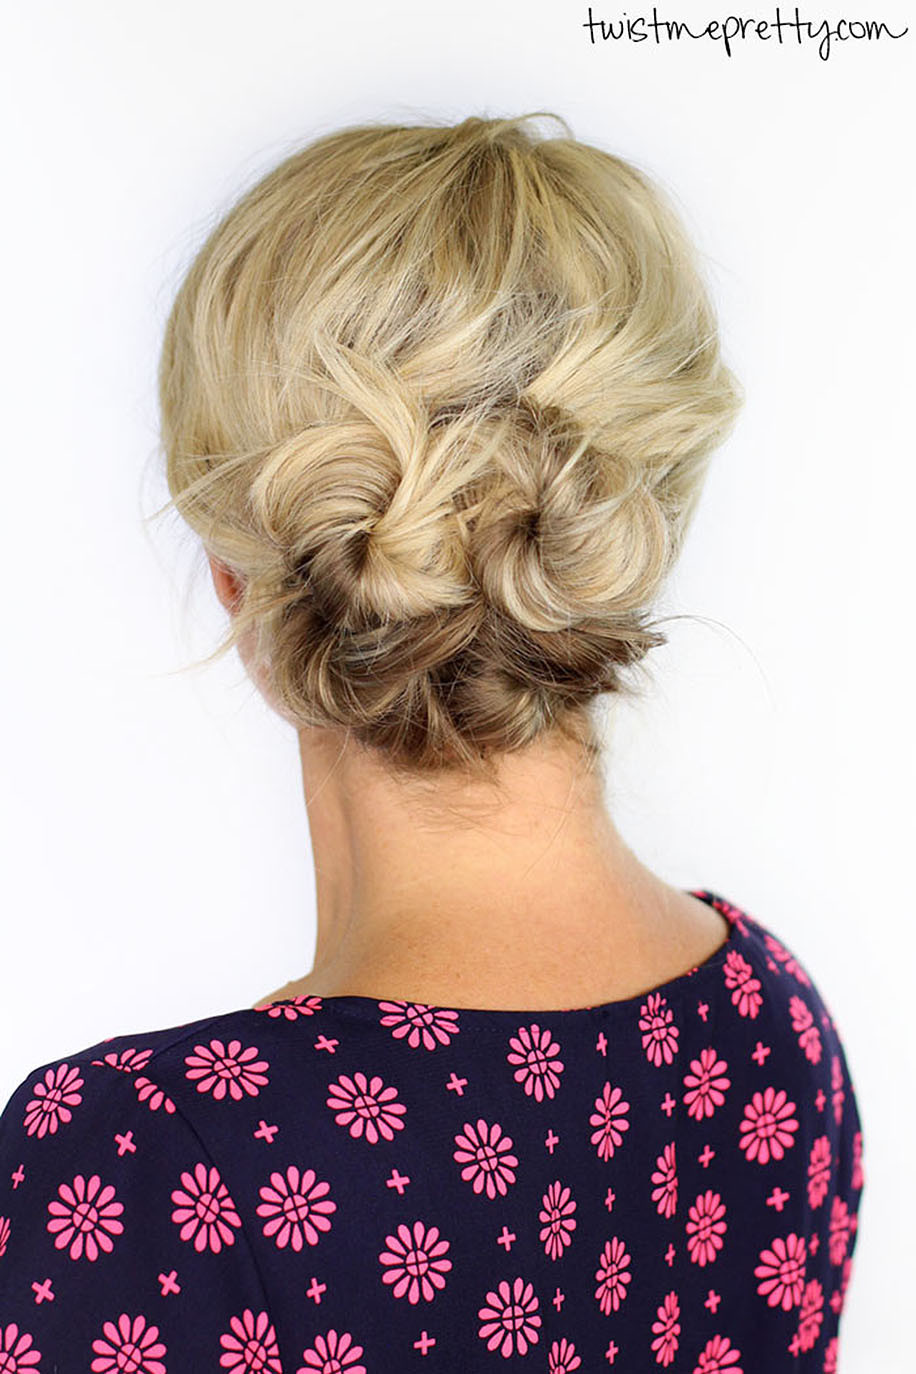 Best ideas about Updo Hairstyles For Short Hair . Save or Pin Cute Short Hairstyles to Step Up Your Hair Game Big Time Now.